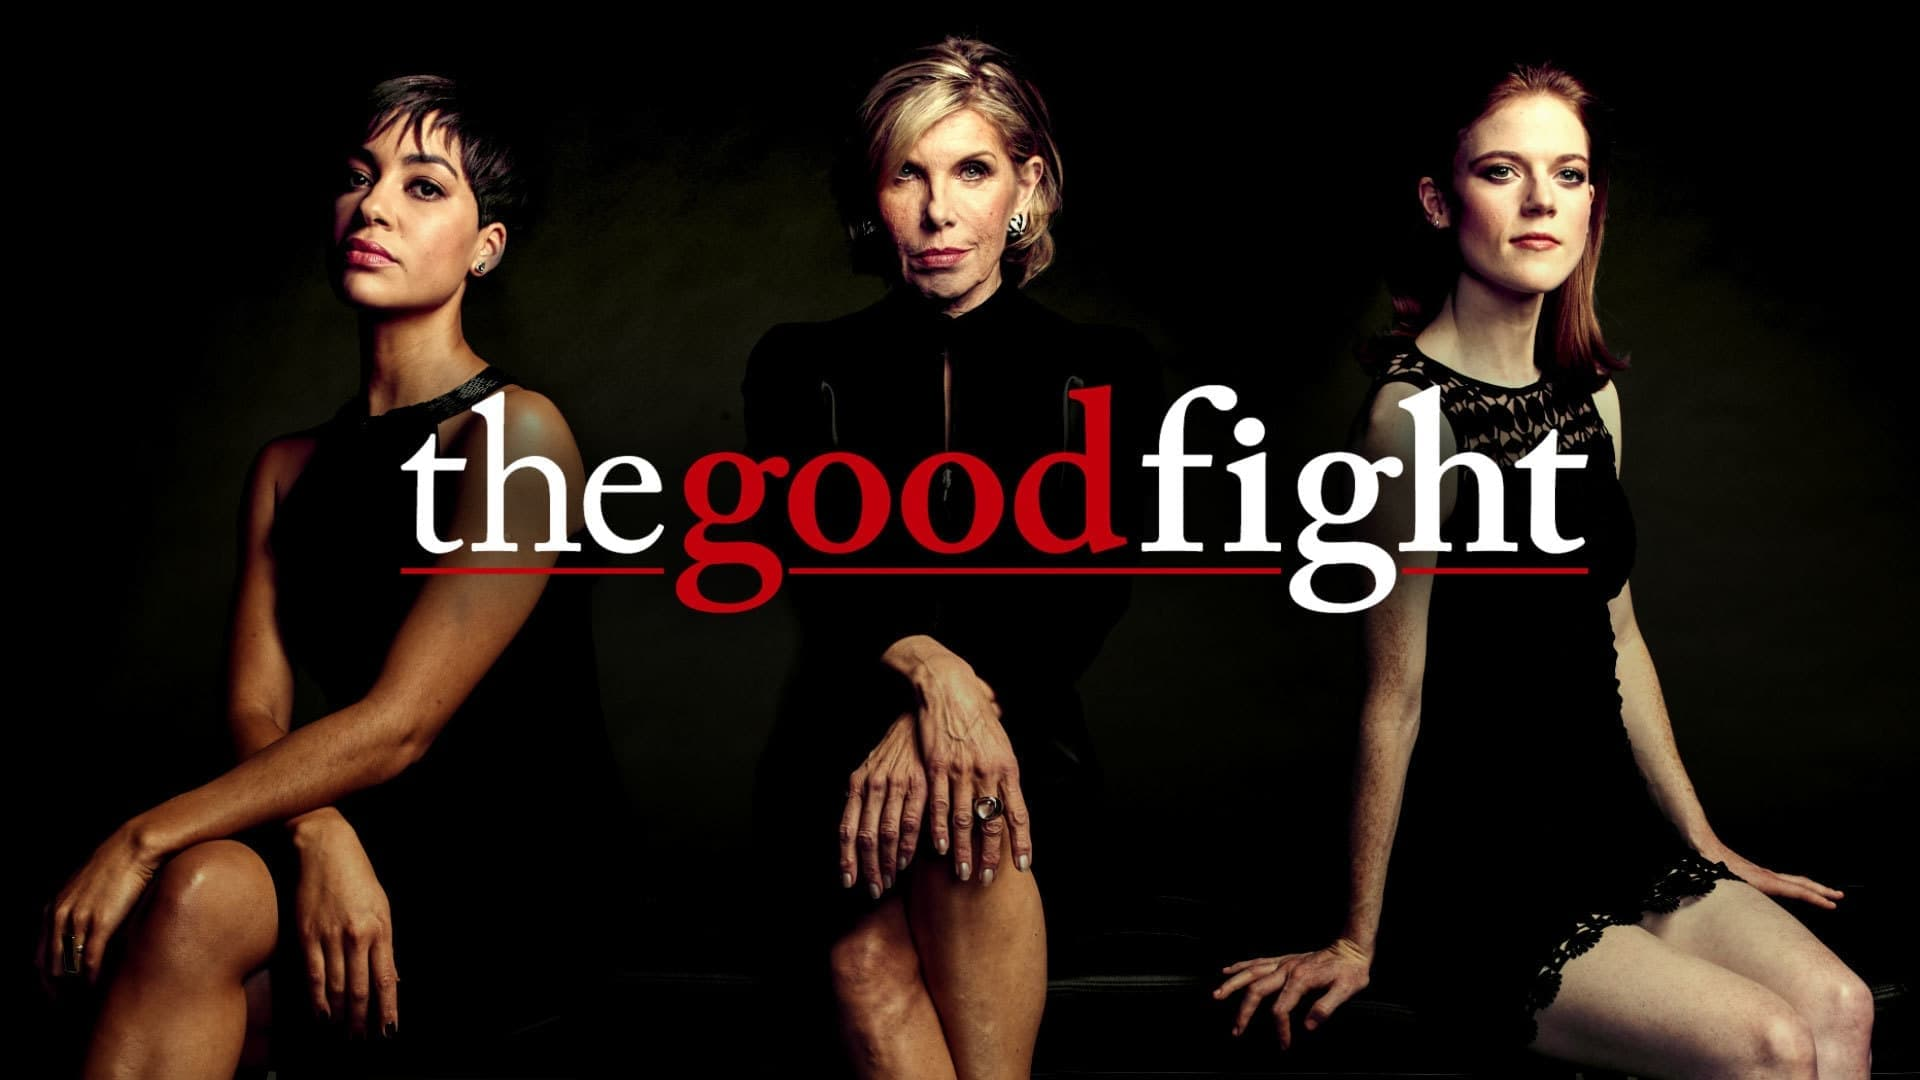 The Good Fight has a new cast member